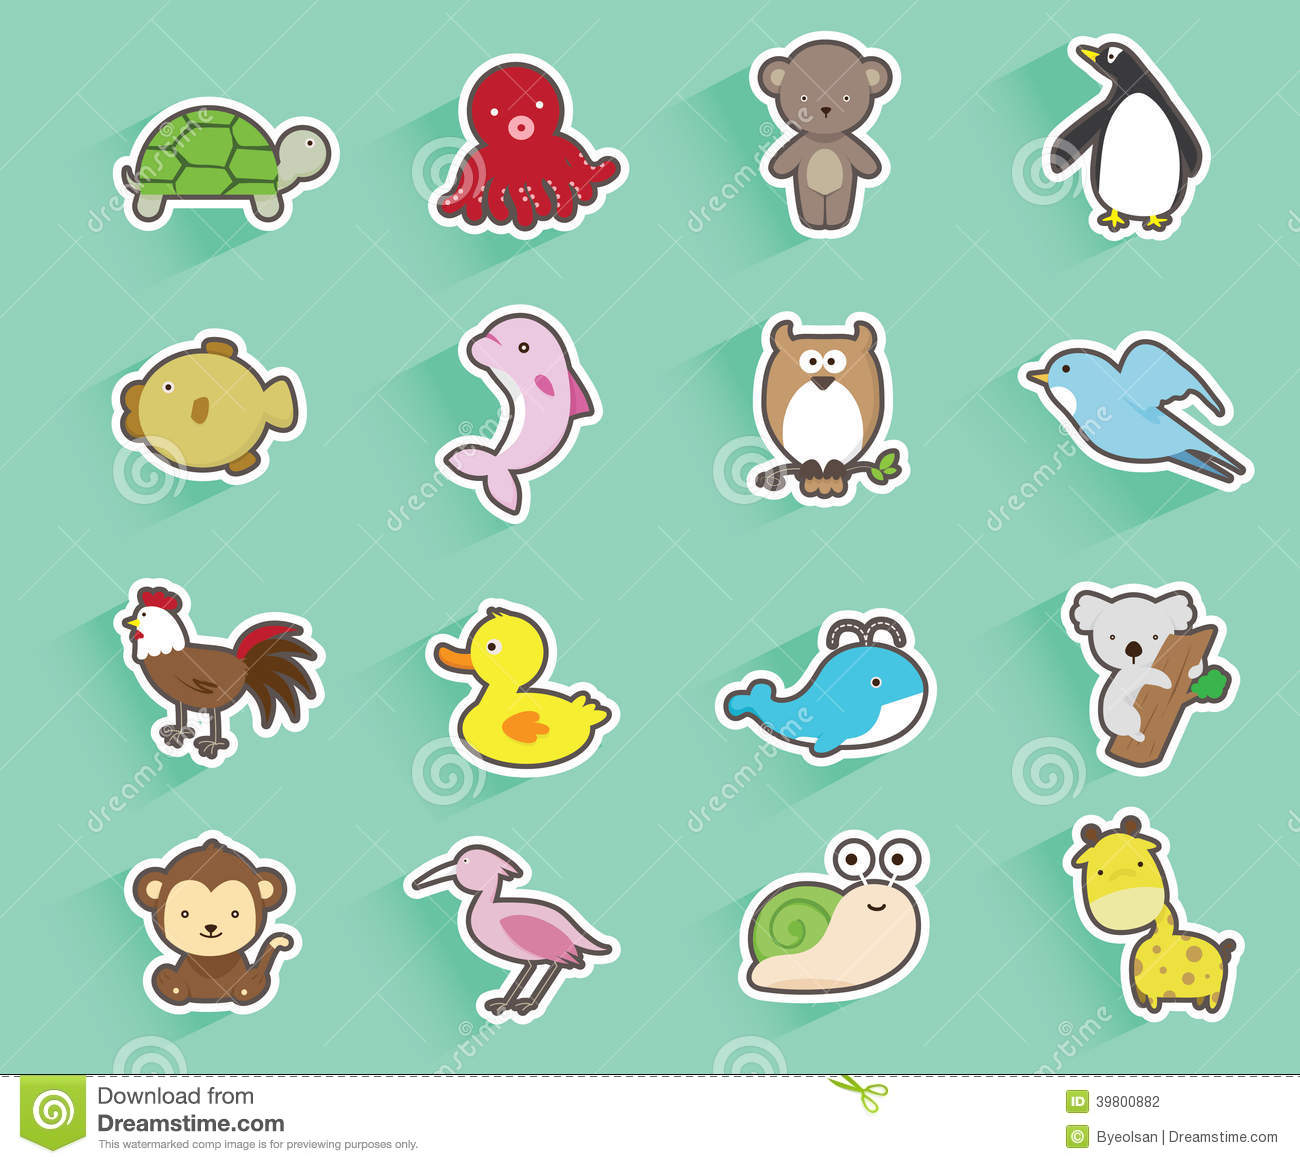 Collection Of Animals Stock Vector - Image: 39800882